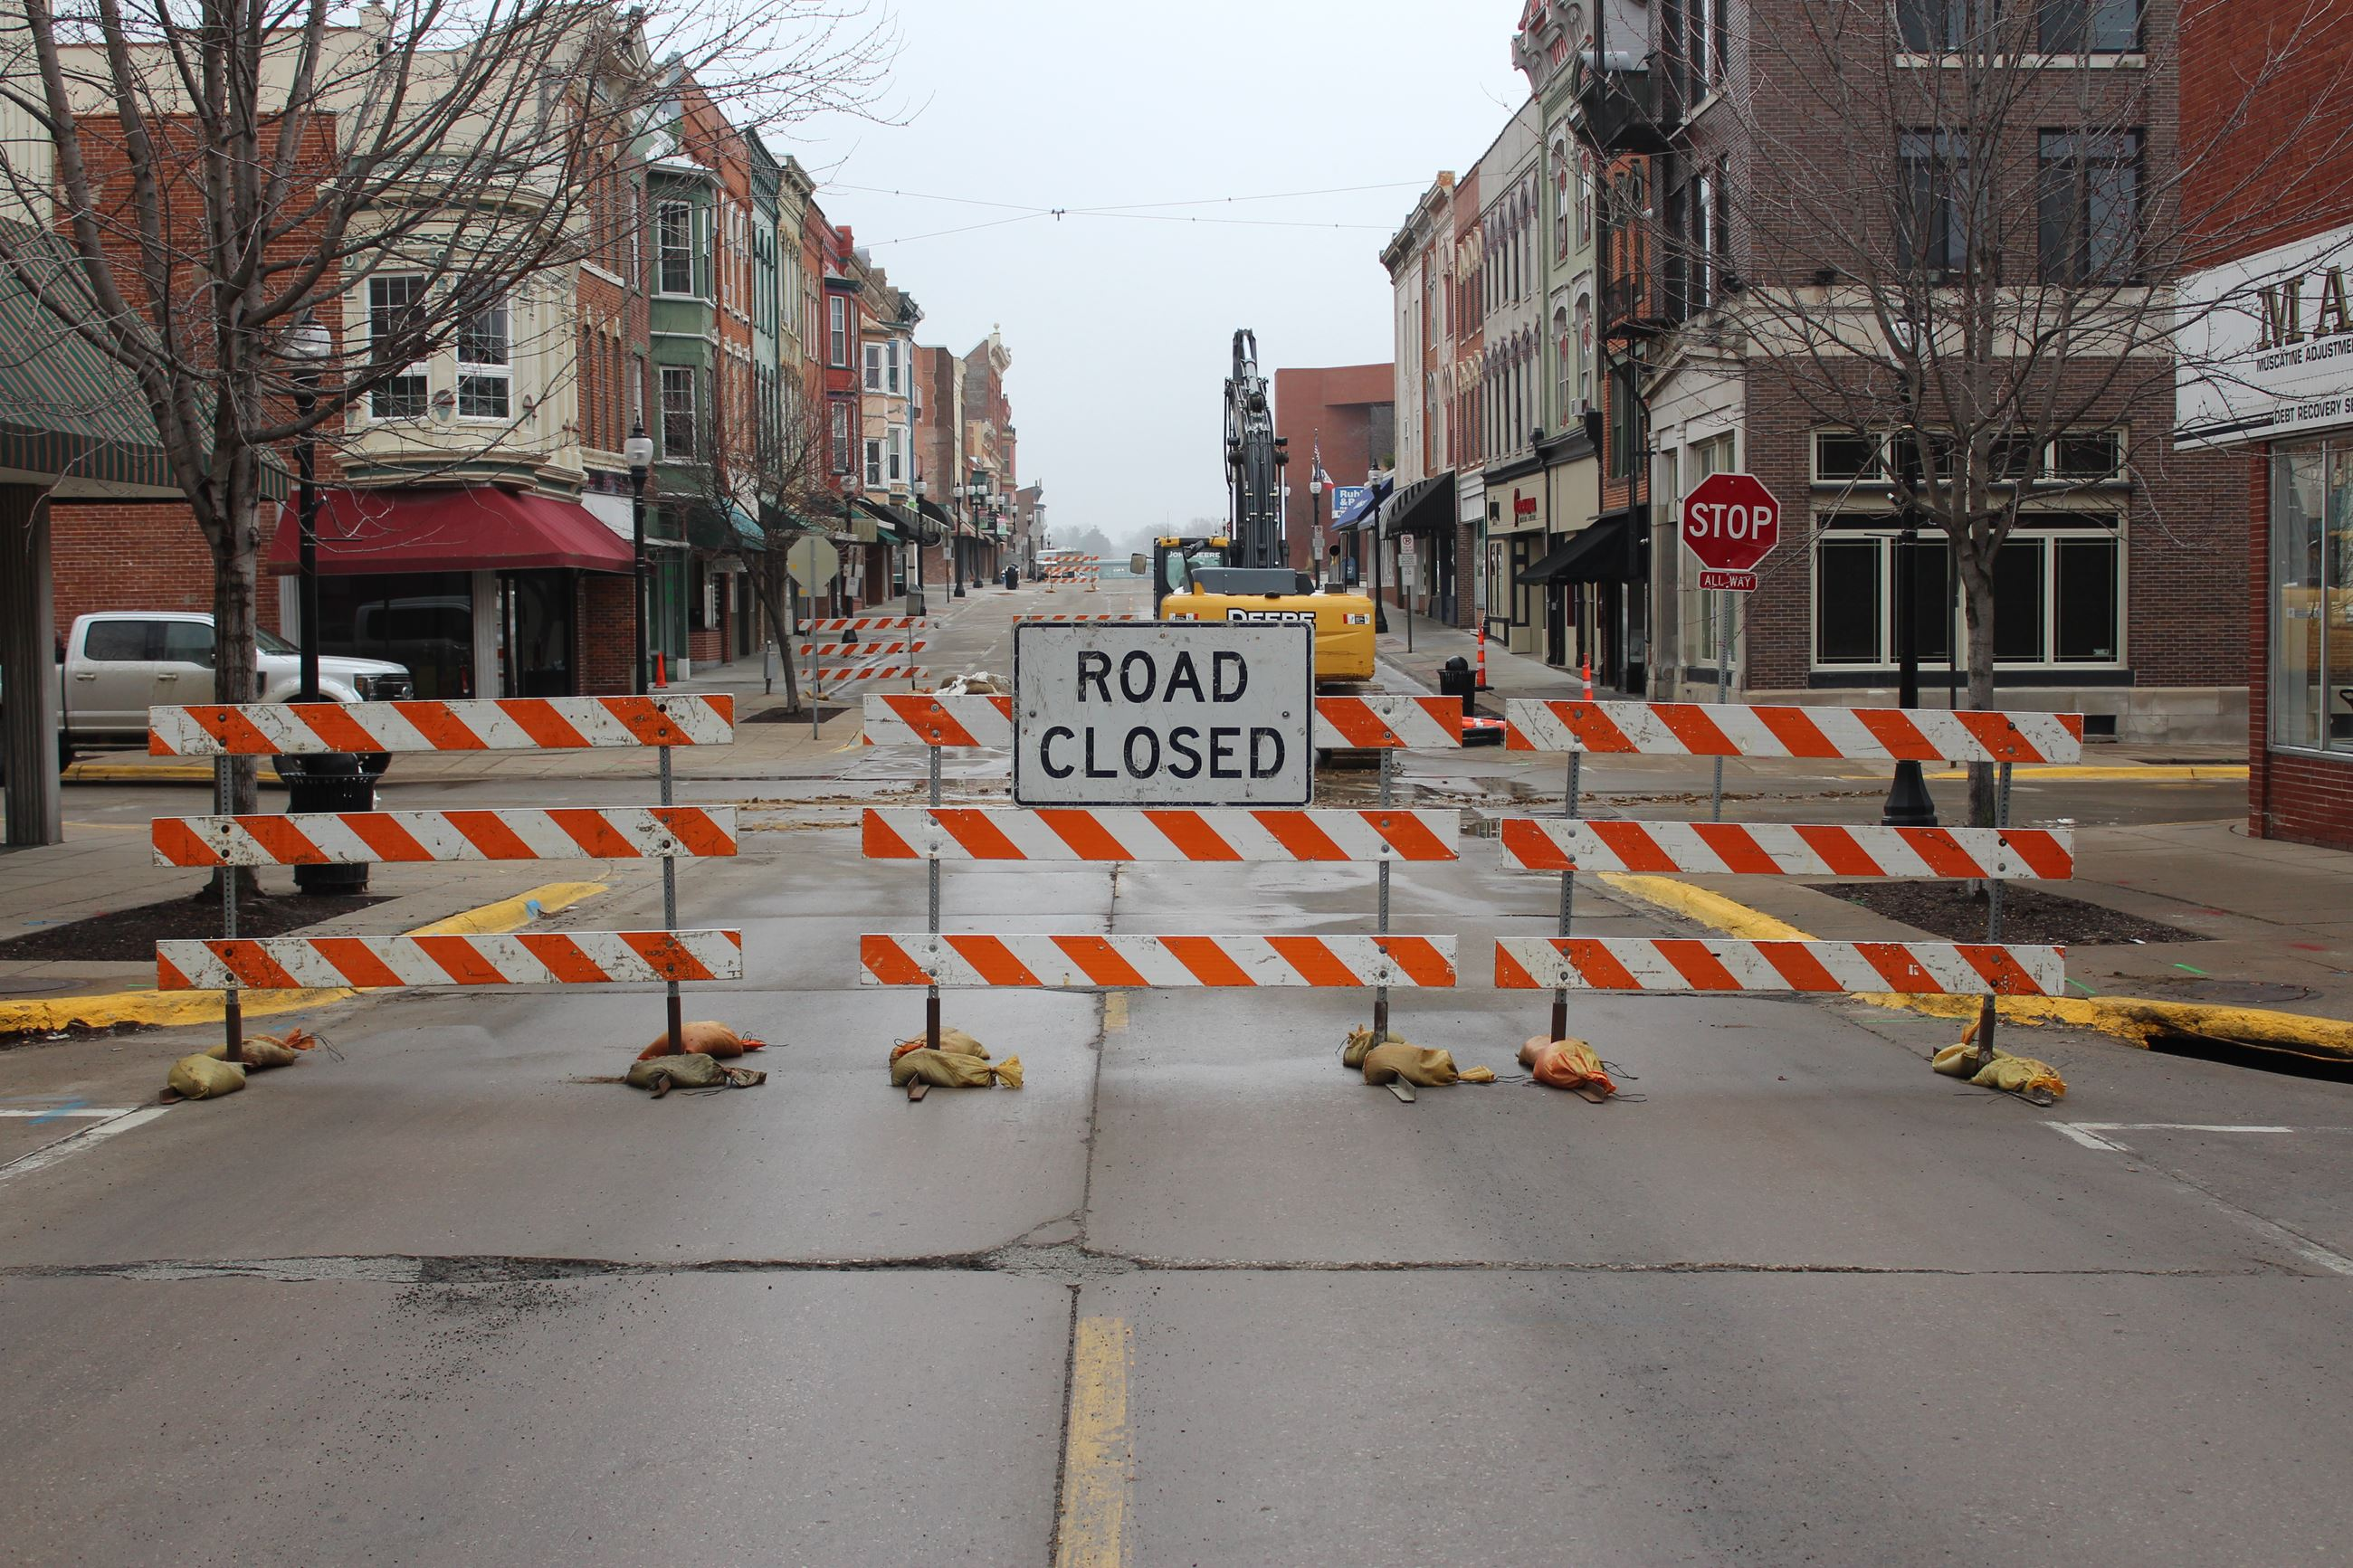 031621 2nd Street Sycamore Intersection Closed 002 (JPG)